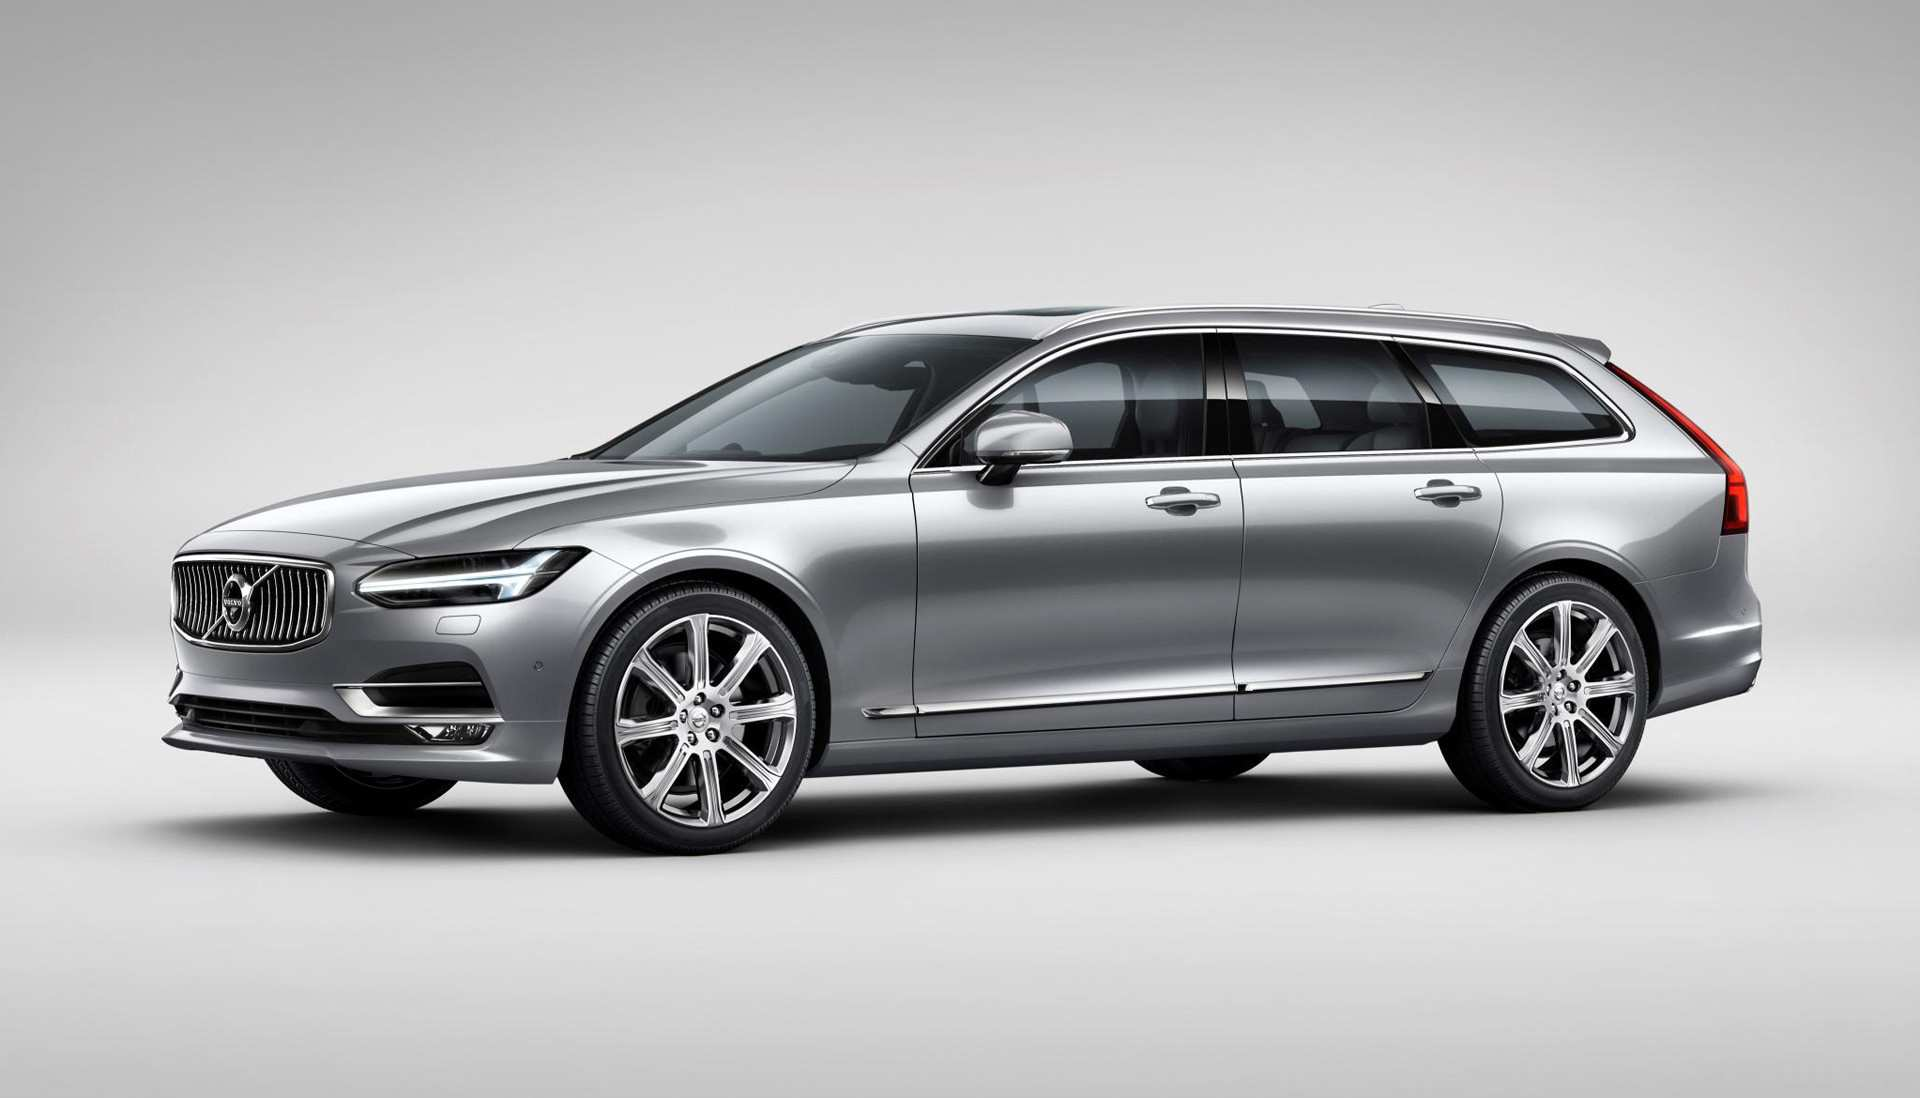 63 The Volvo S90 2020 Facelift Photos